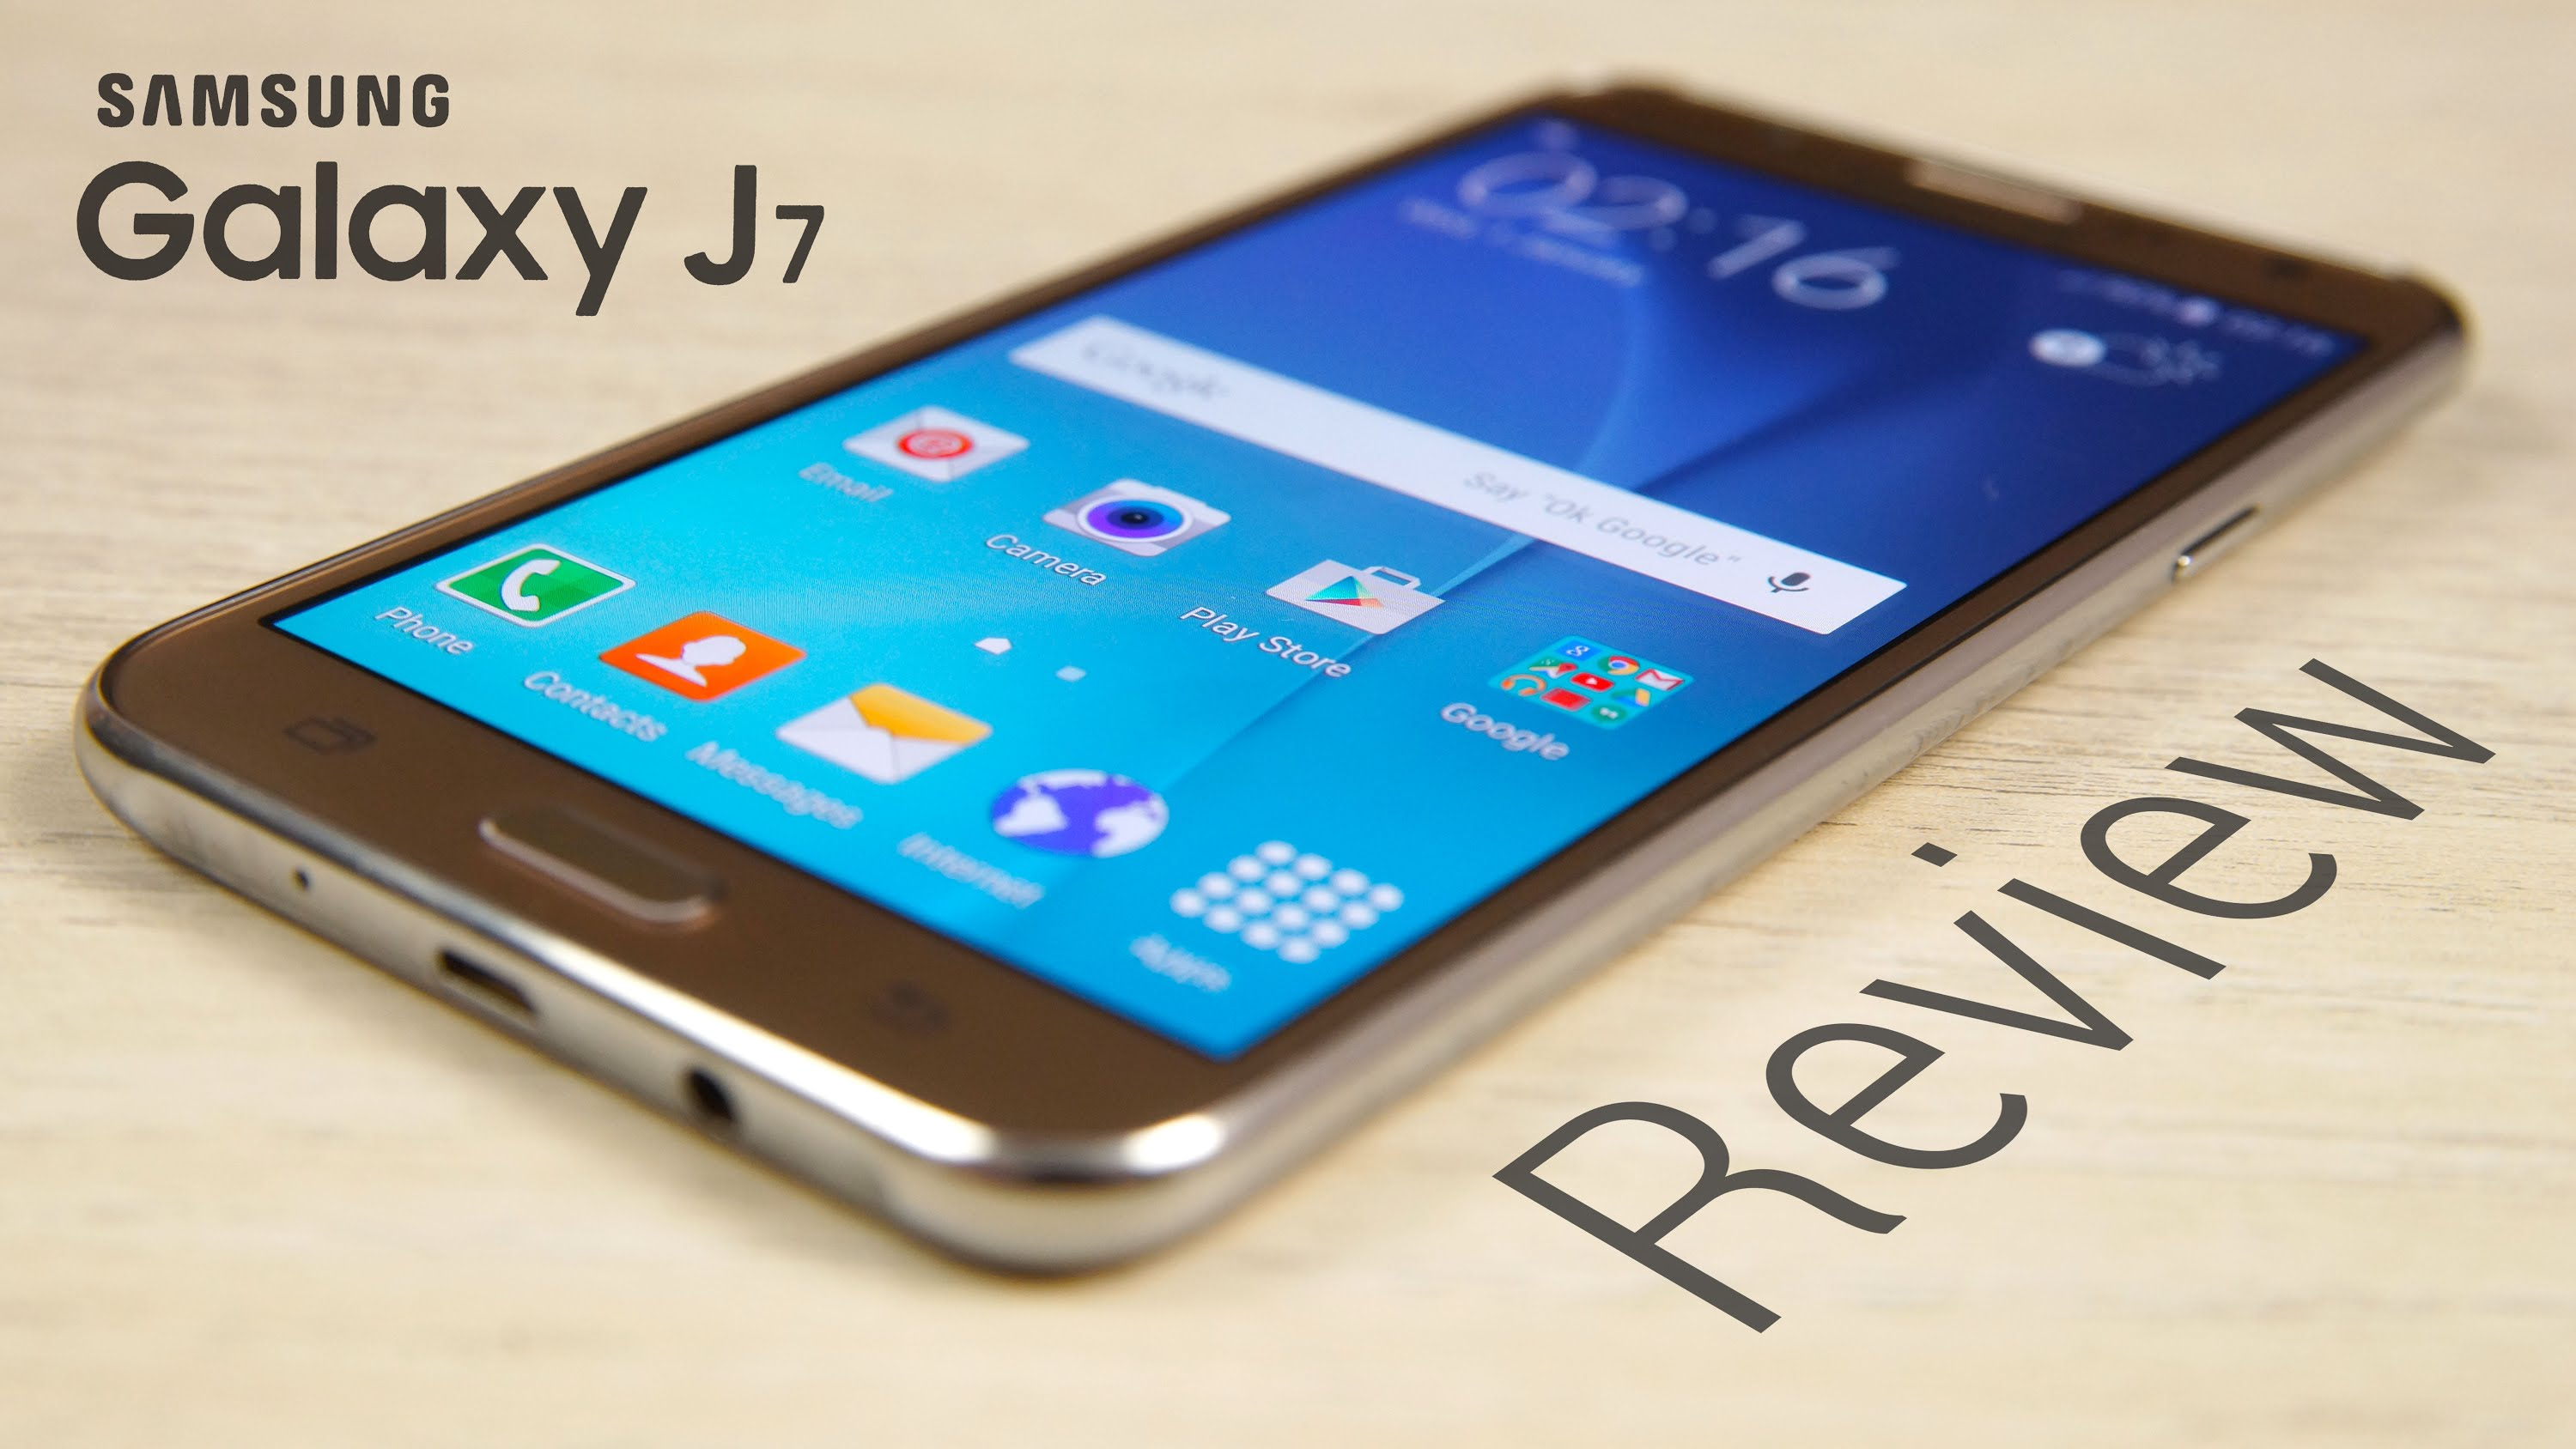 Samsung Galaxy J7 (2016) specs revealed from kernel source code